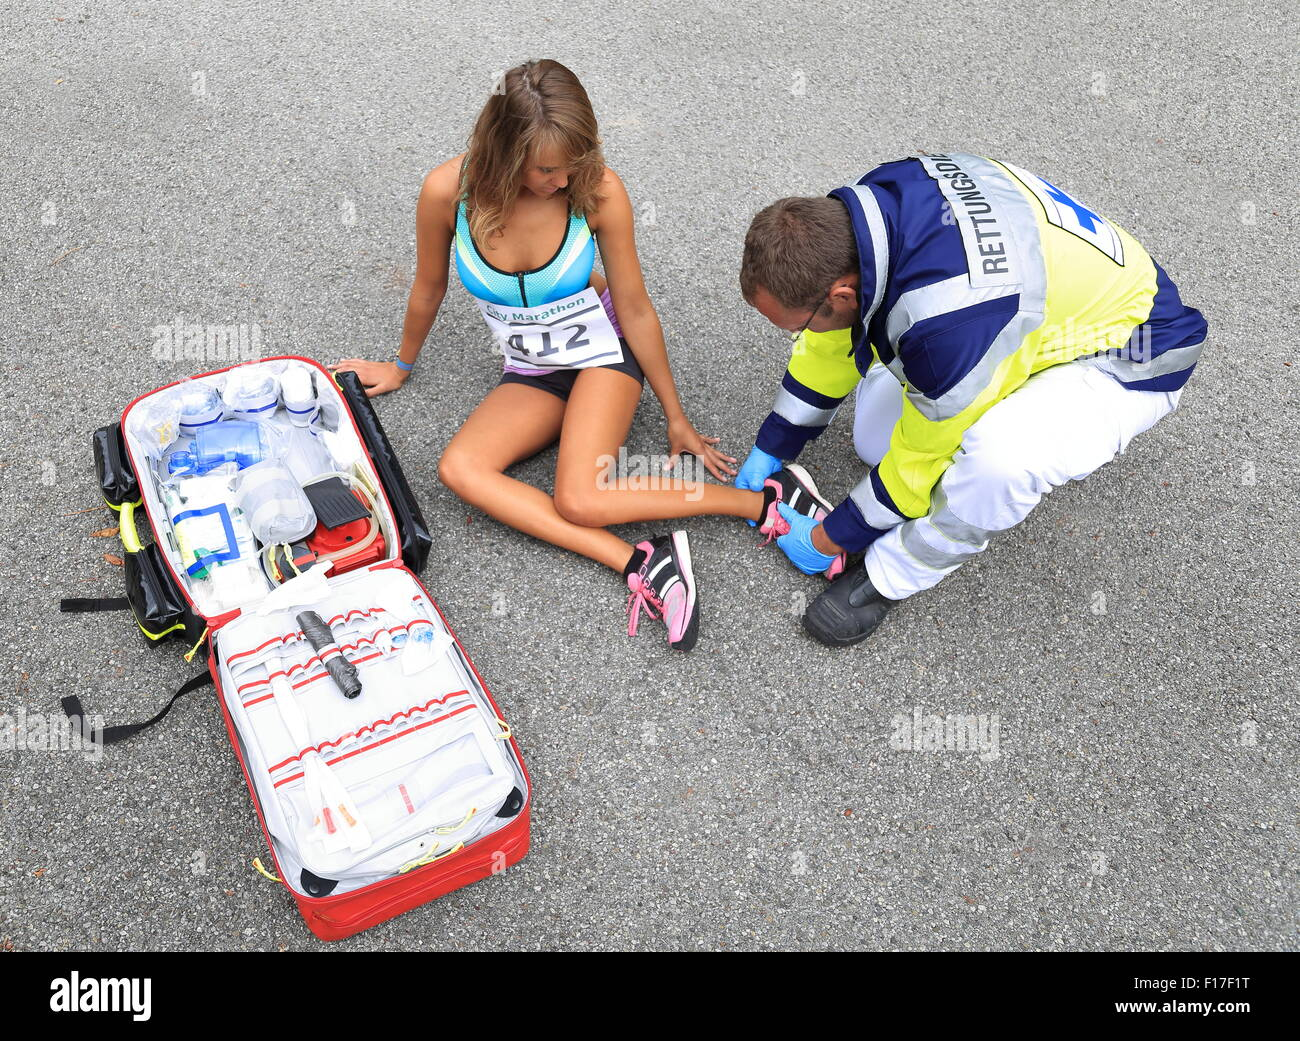 A Paramedic helping a female runner wiht ankle accident - Stock Image